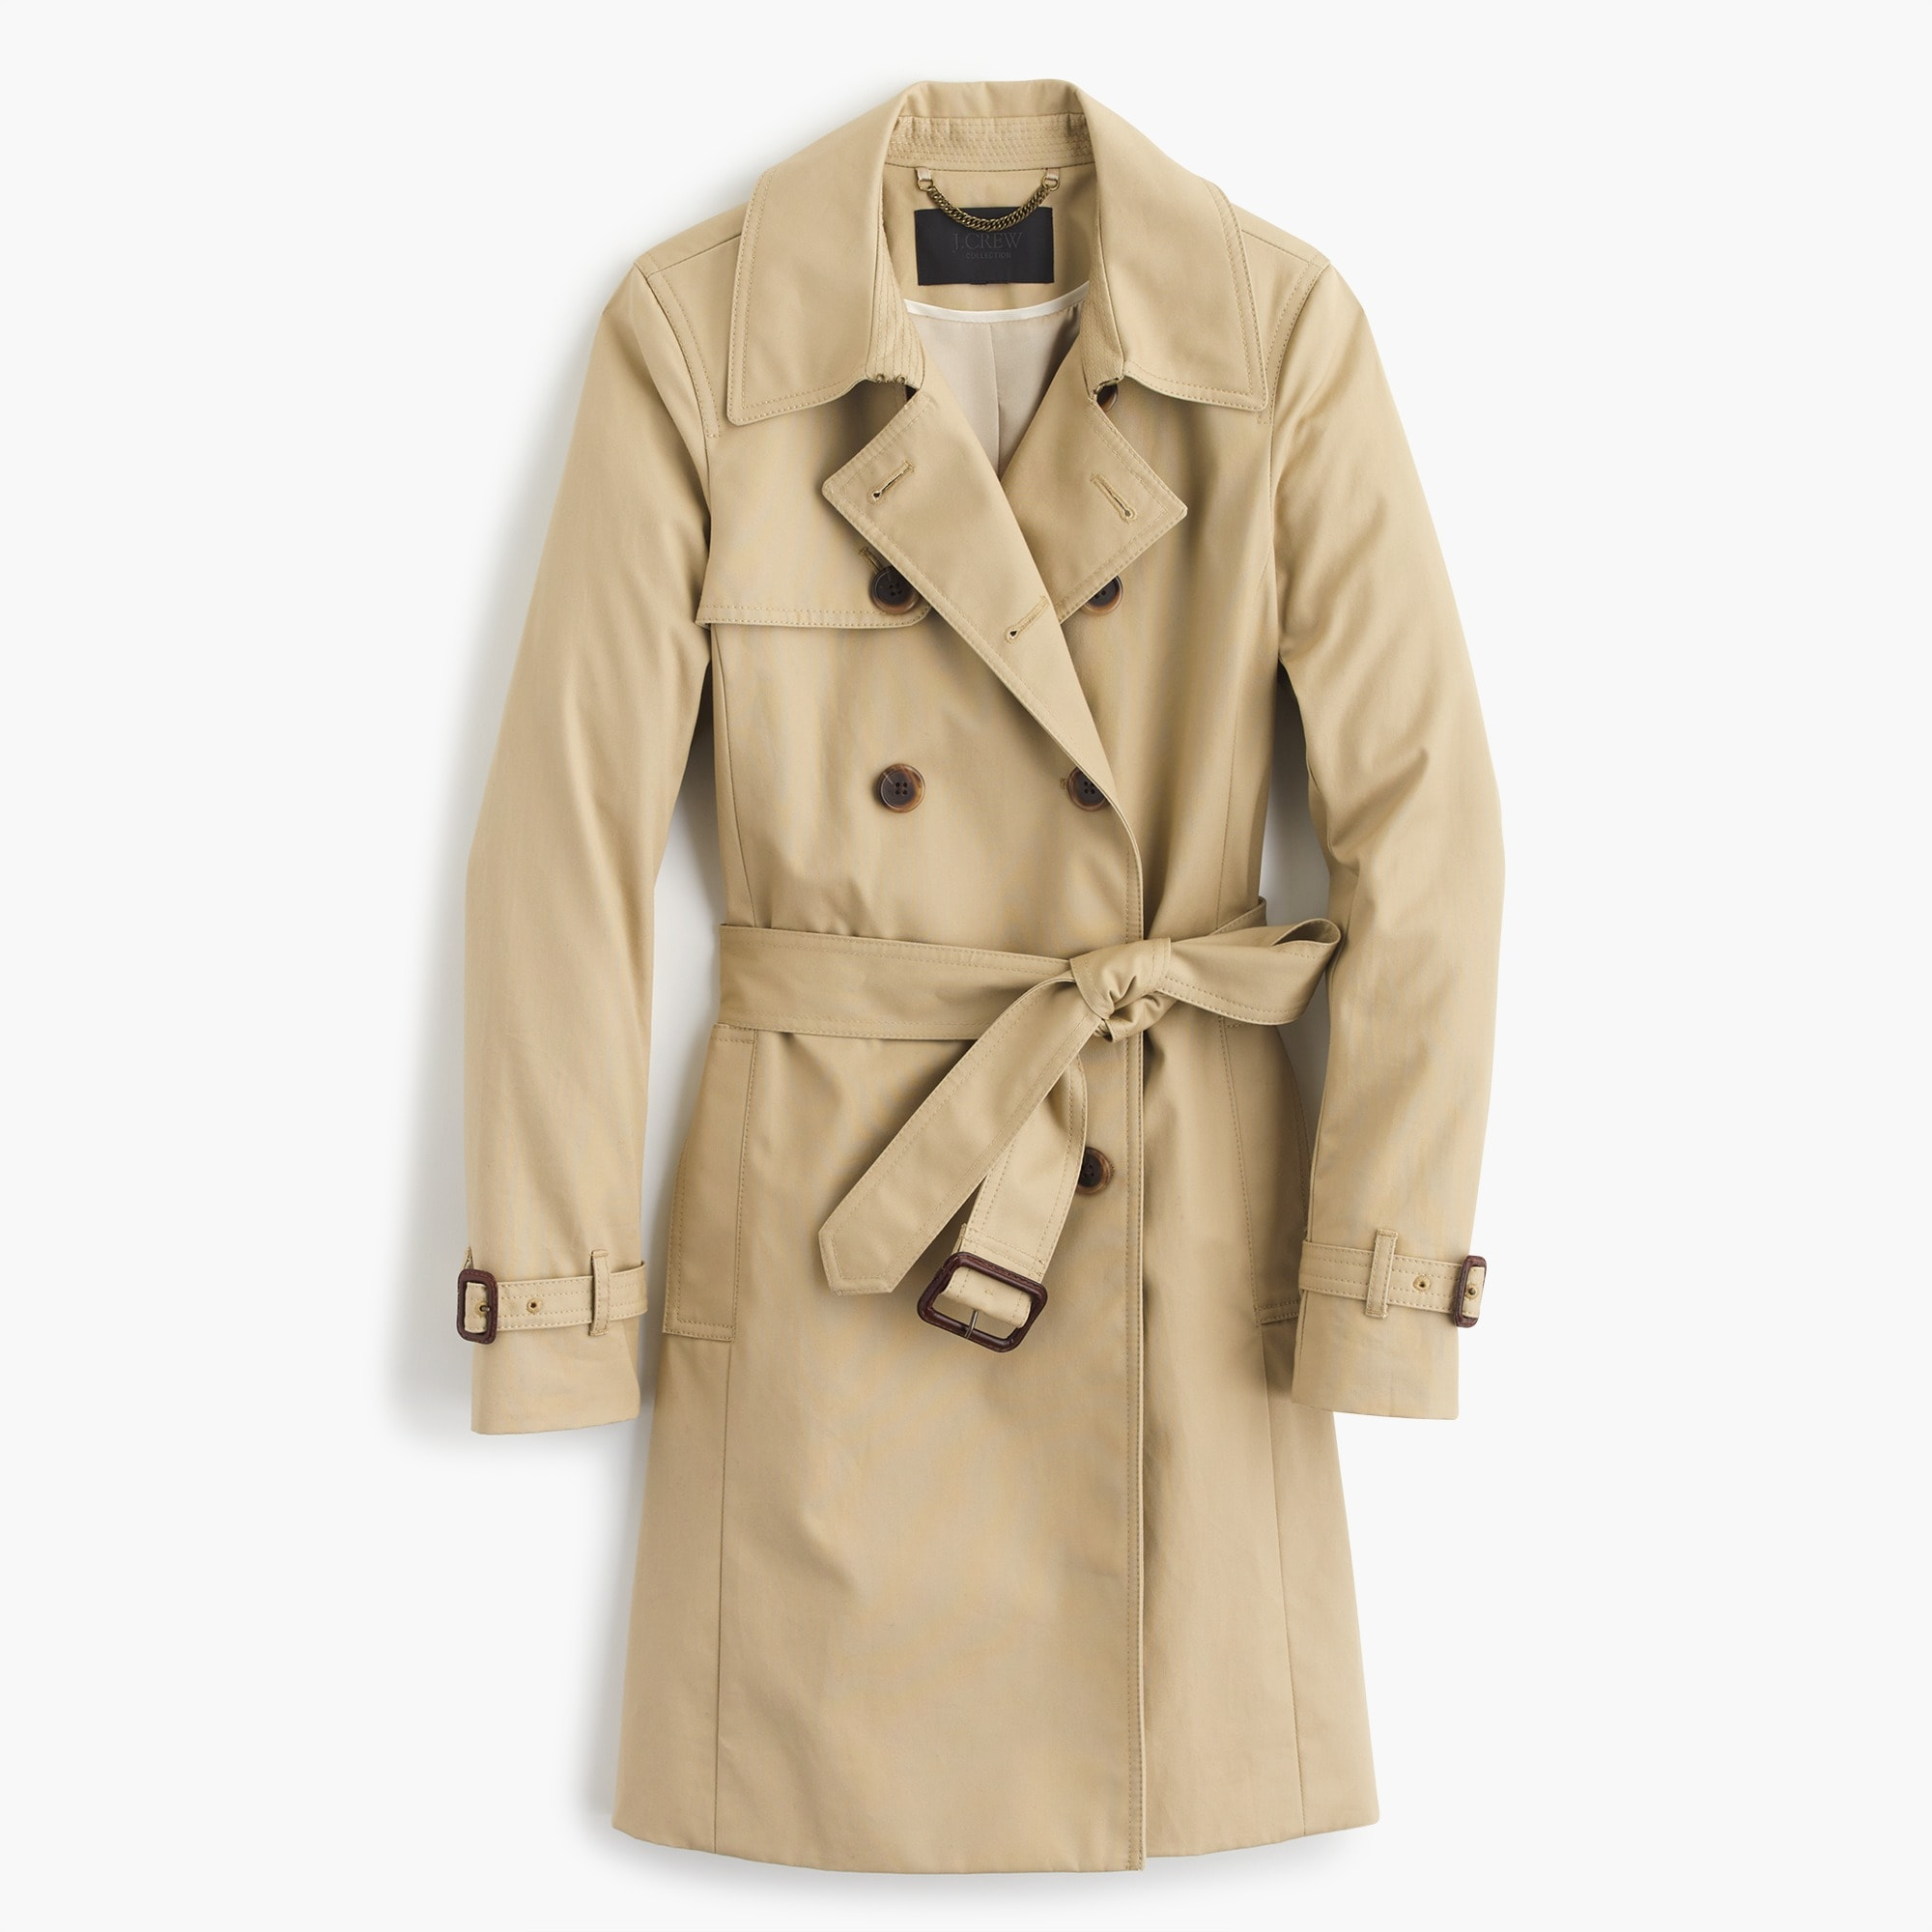 Image 2 for Icon trench coat